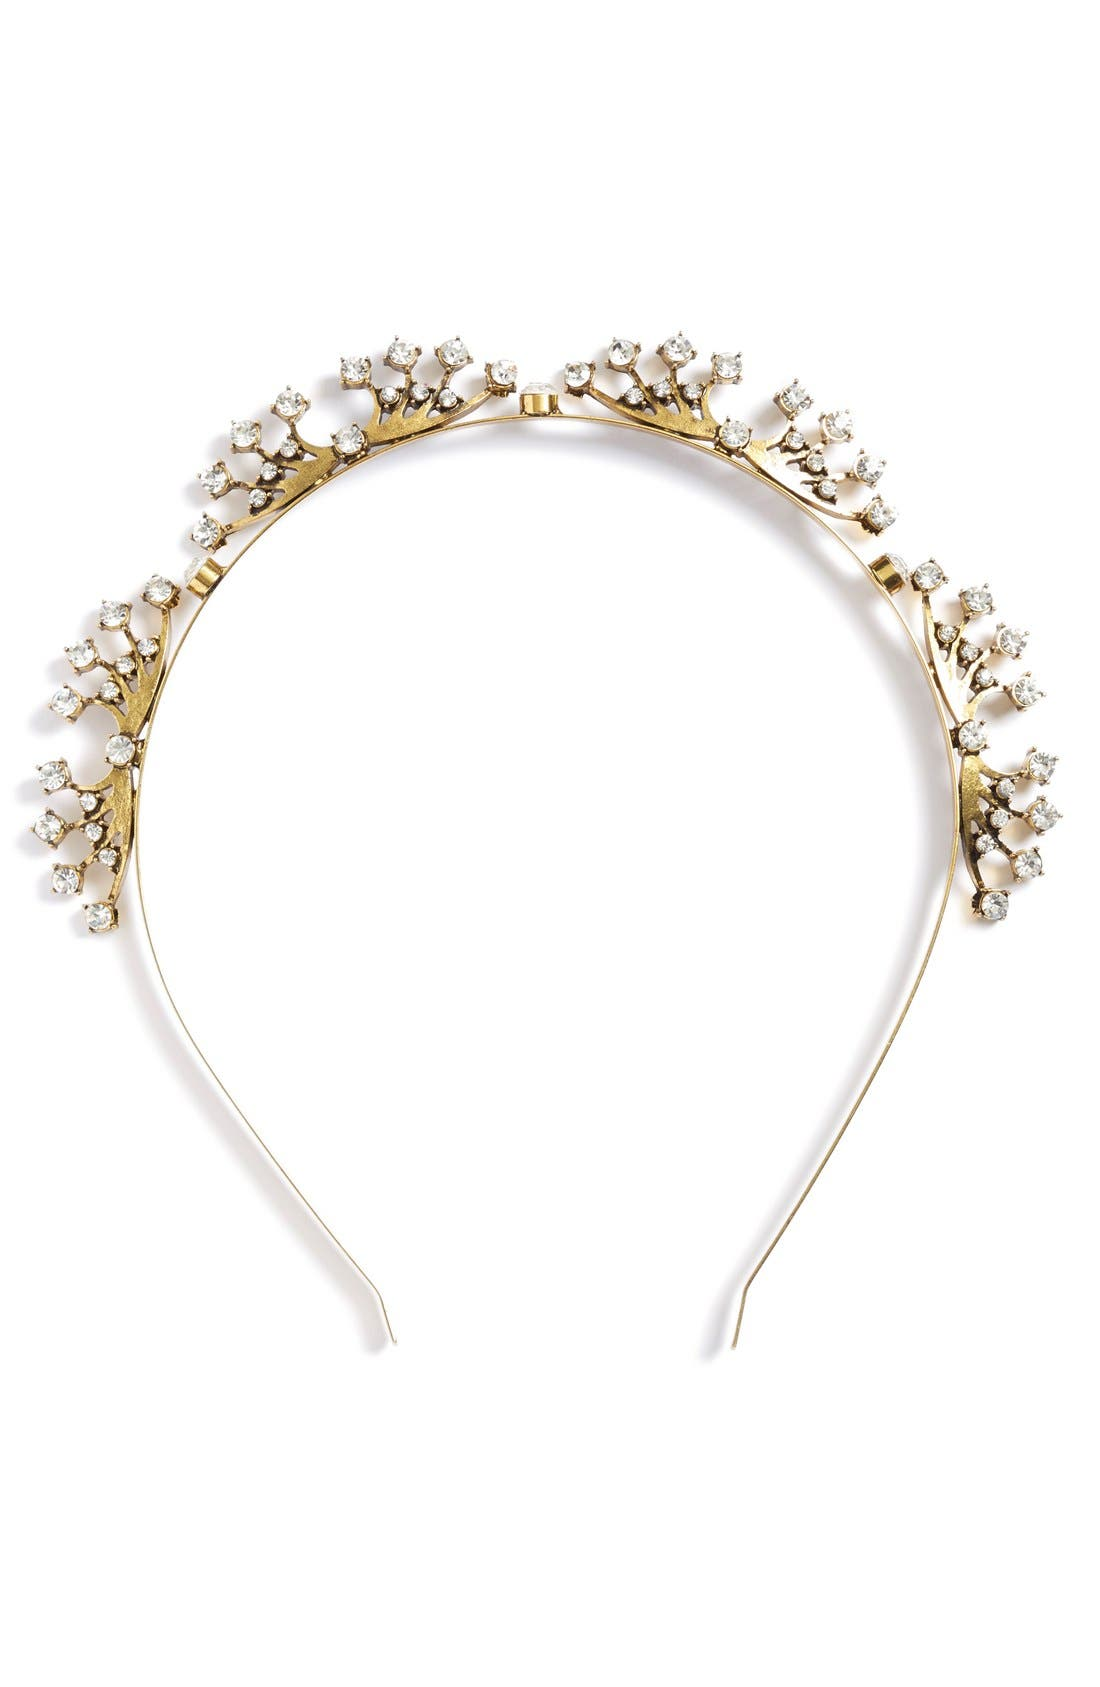 Alternate Image 3  - Untamed Petals by Amanda Judge x Meredith Markworth-Pollack 'Royal Tiara' Gilded Headband